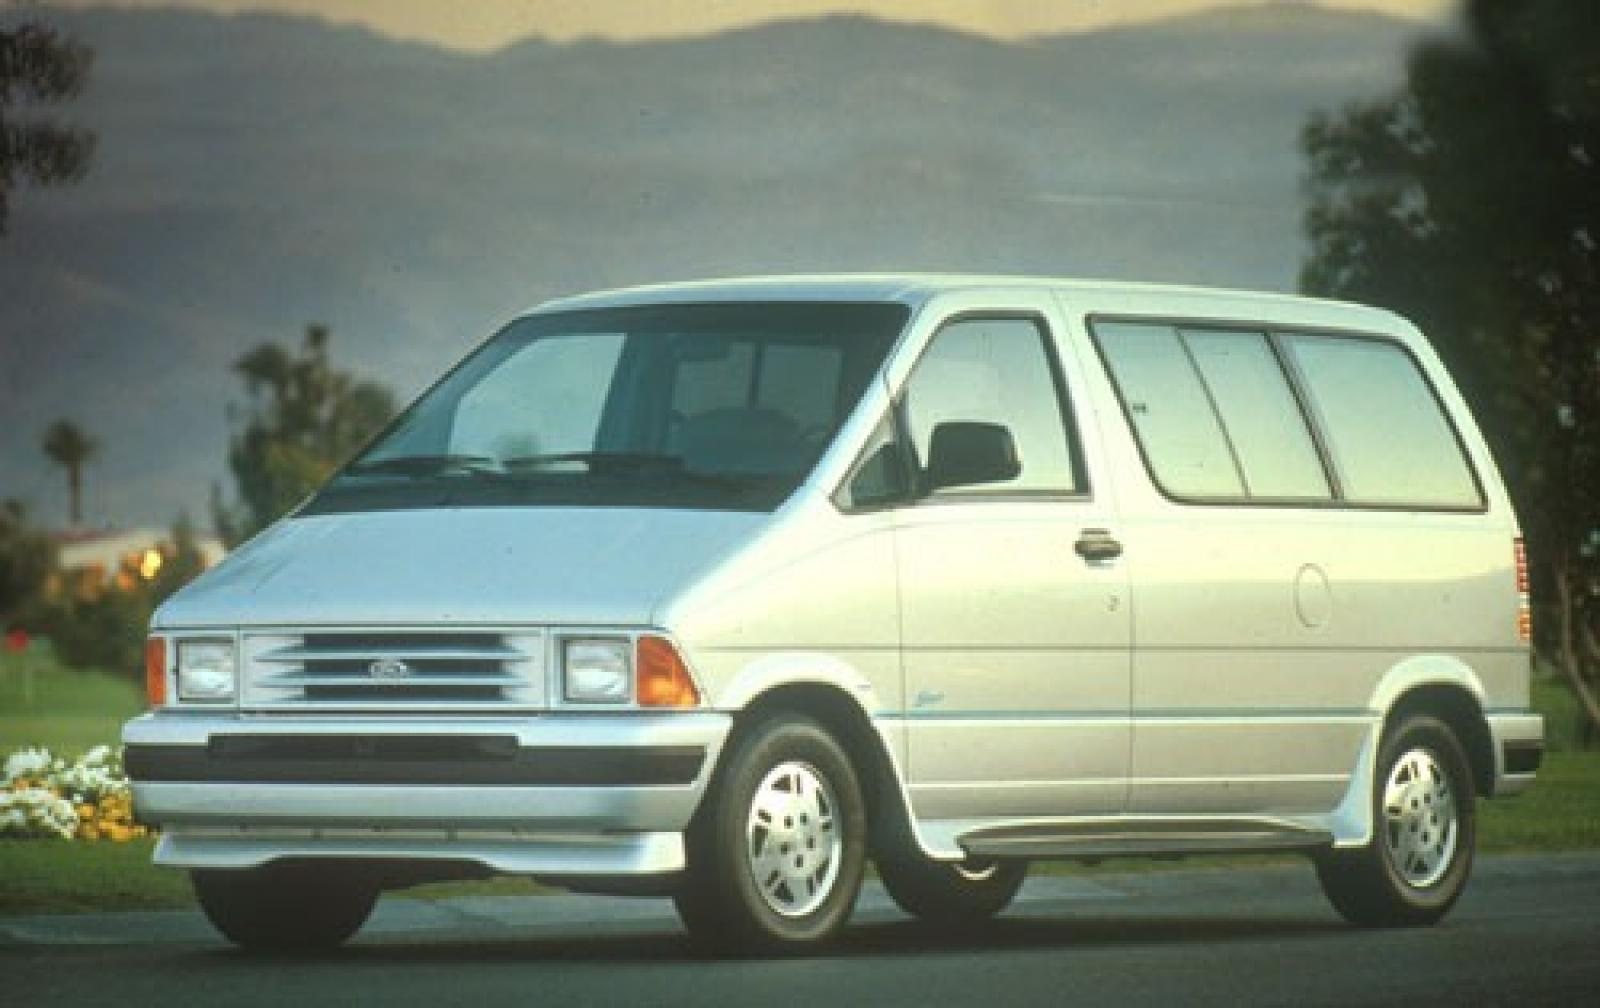 1990 Ford Aerostar Information And Photos Zombiedrive